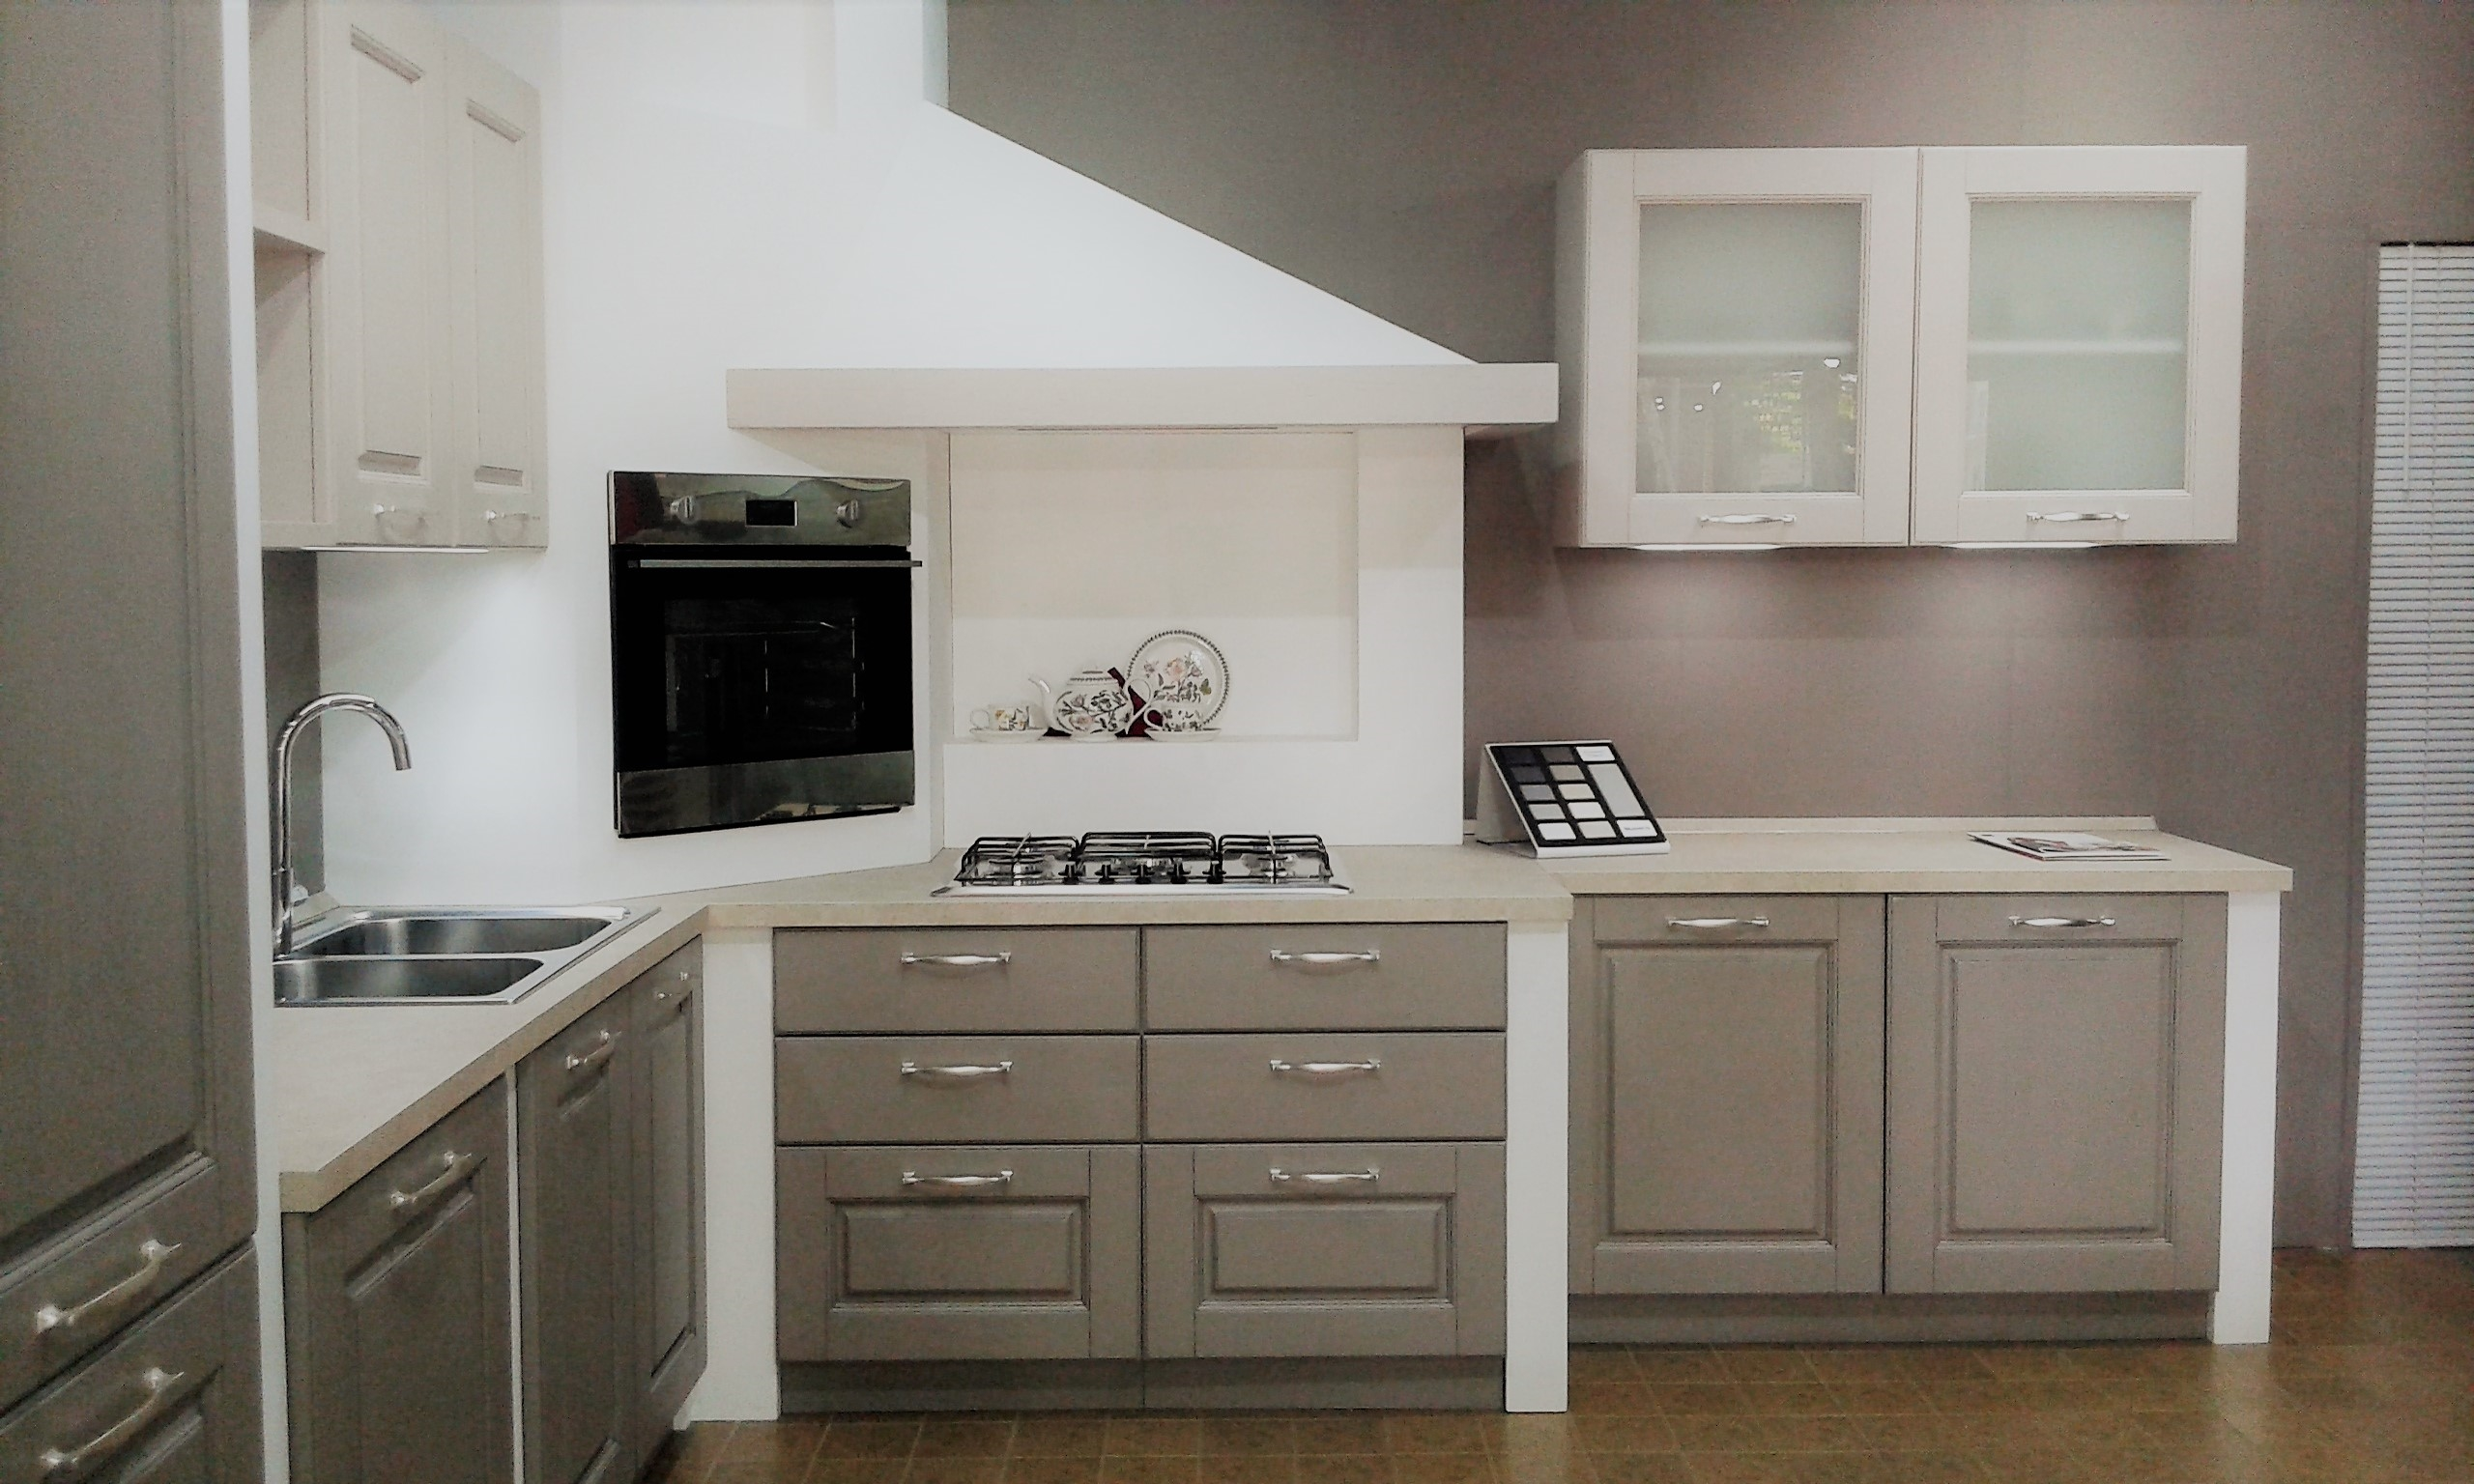 Stunning cappe ad angolo per cucina contemporary home for Offerte cucine